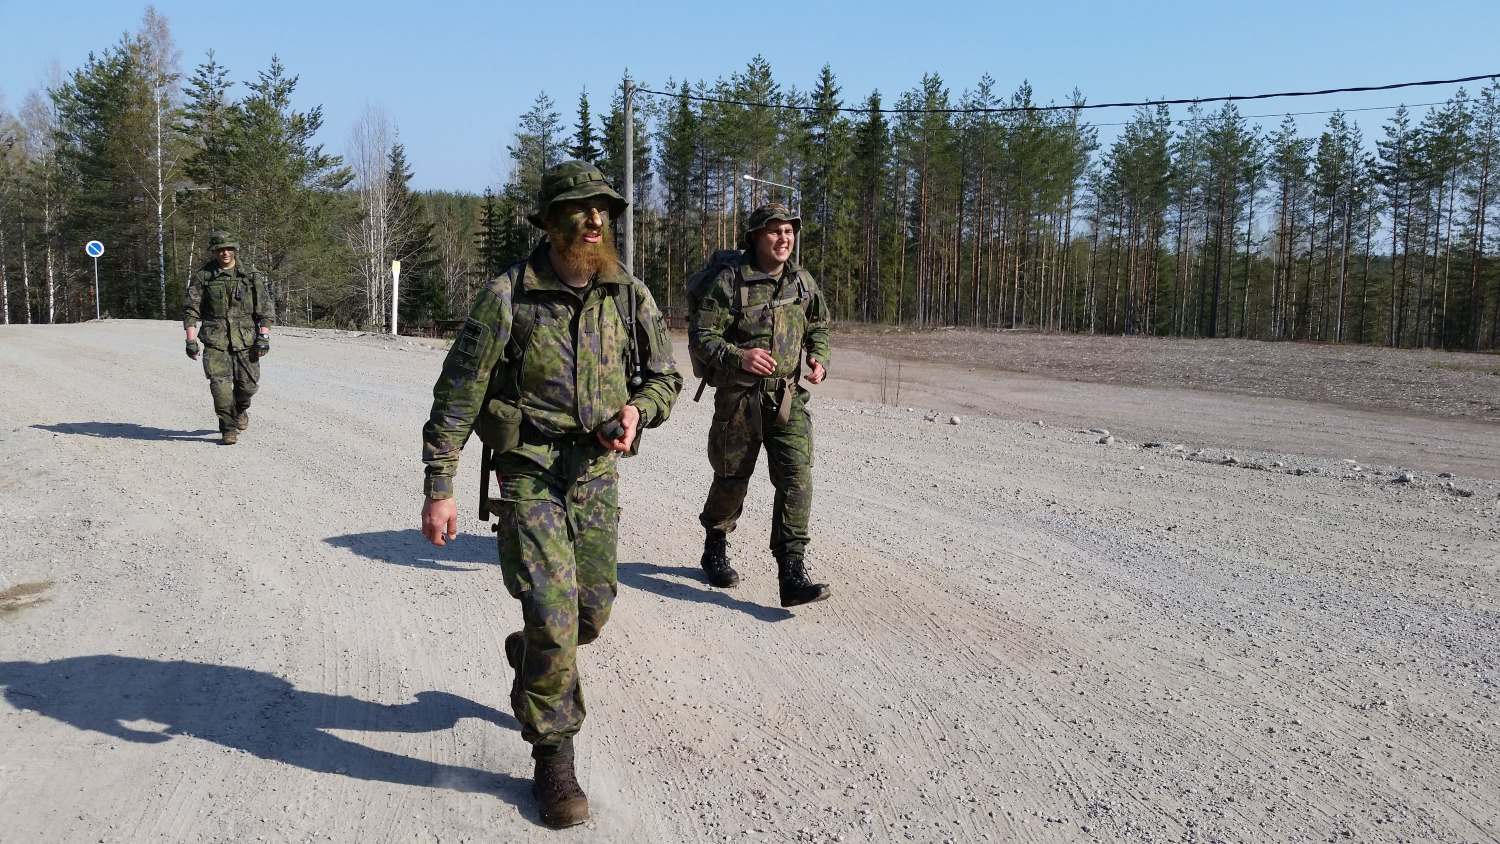 Three people walking on a dirt road in camouflage clothing.